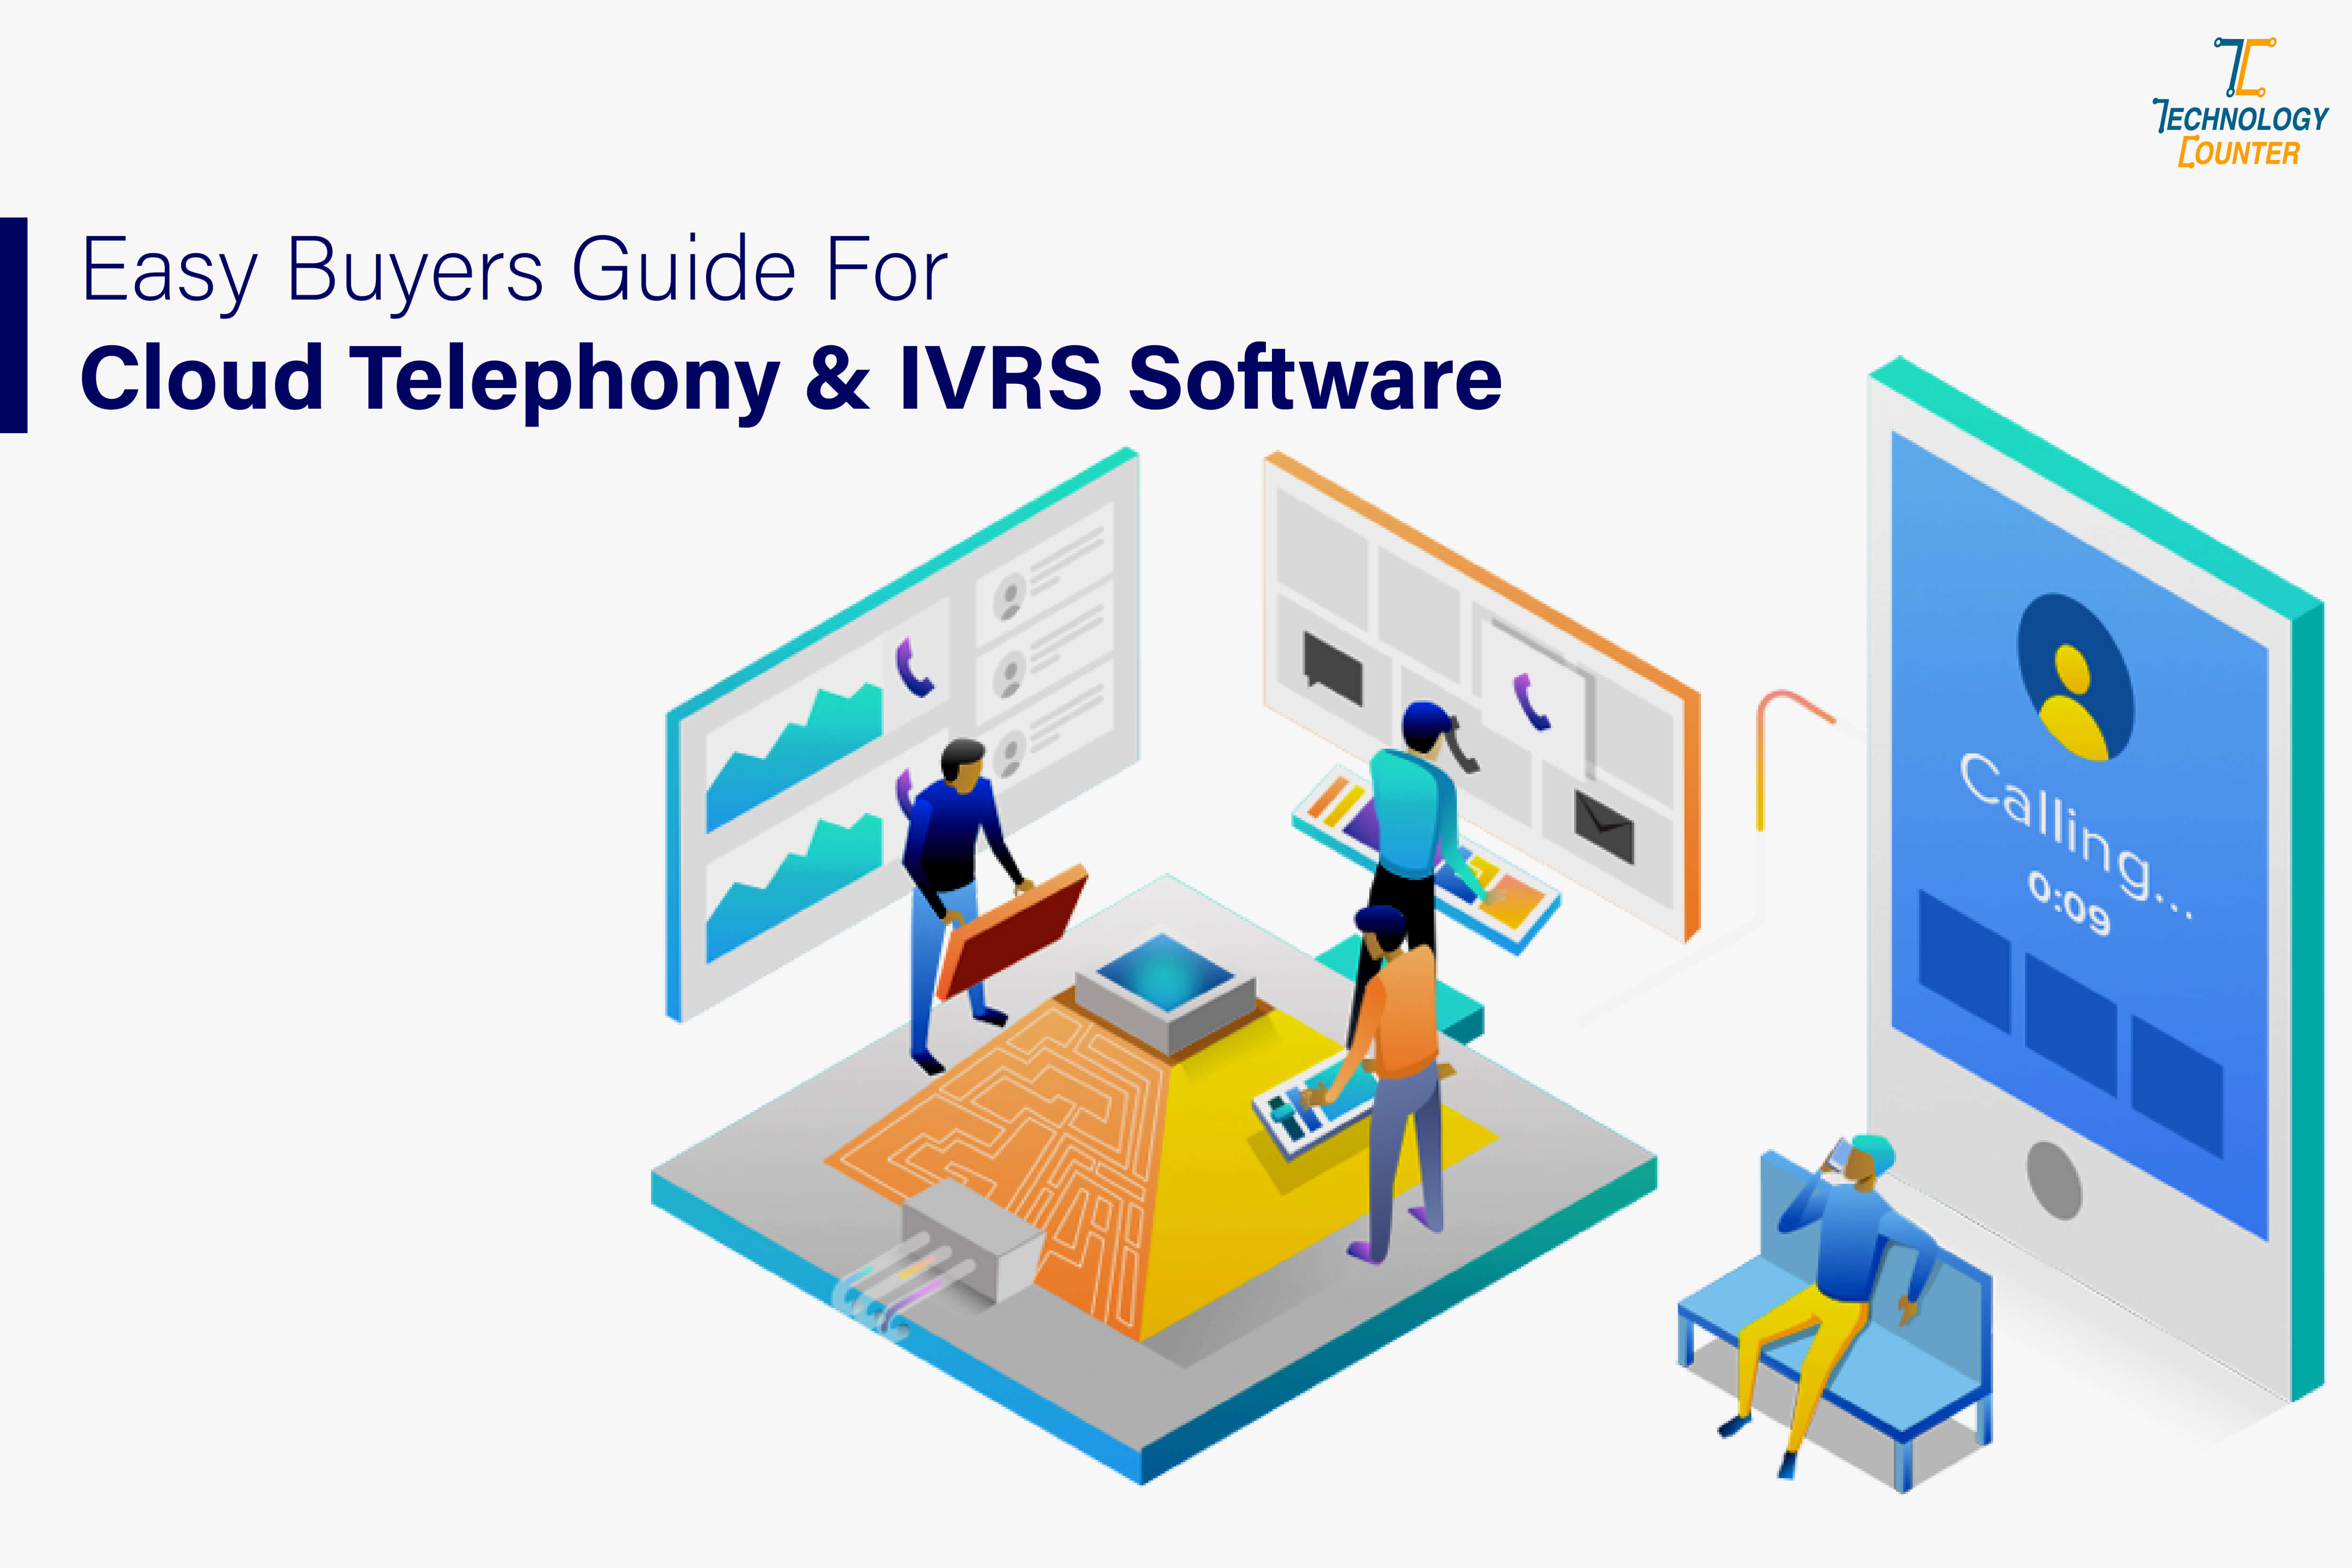 Byers Guide For Cloud Telephony and IVRS Software